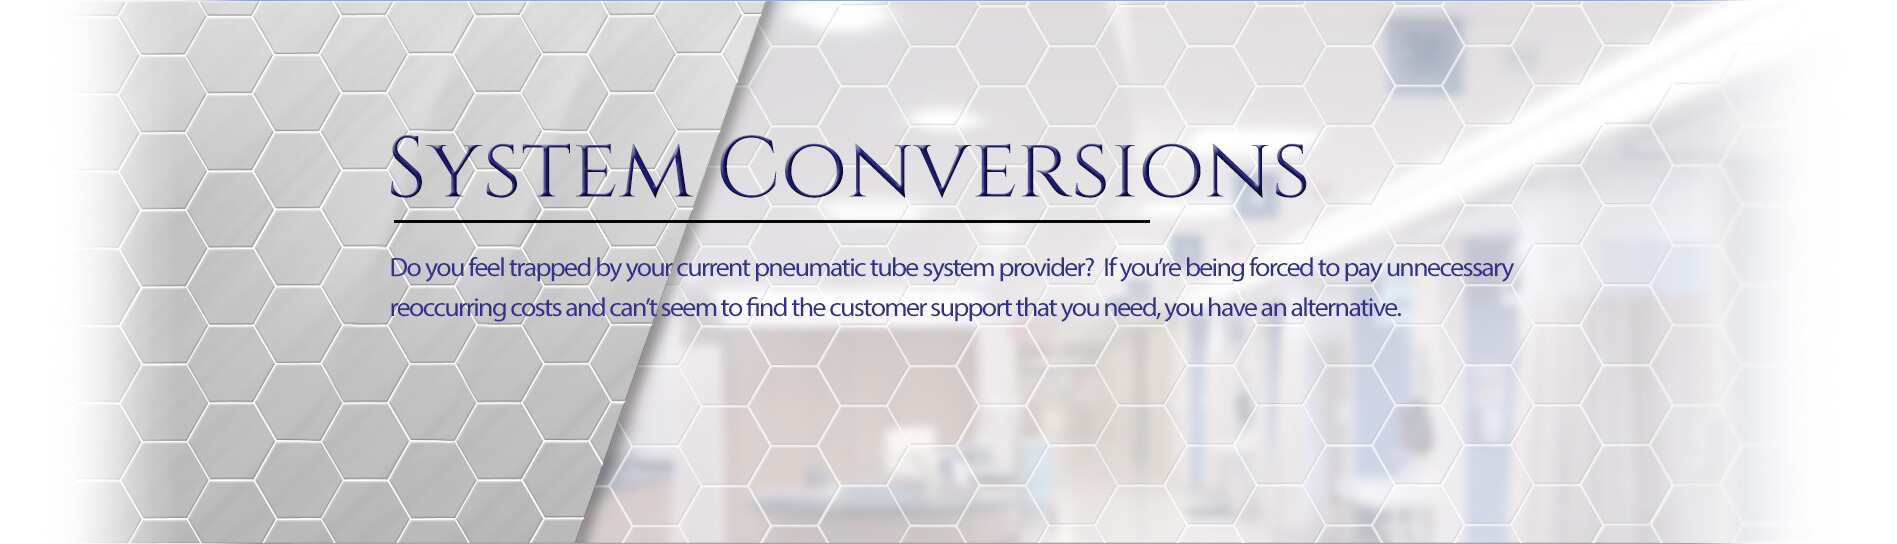 System Conversions - Do you feel trapped by your current pneumatic tube system provider? If you're being forced to pay unnecessary reoccurring costs and can't seem to find the customer support that you need, you have an alternative.